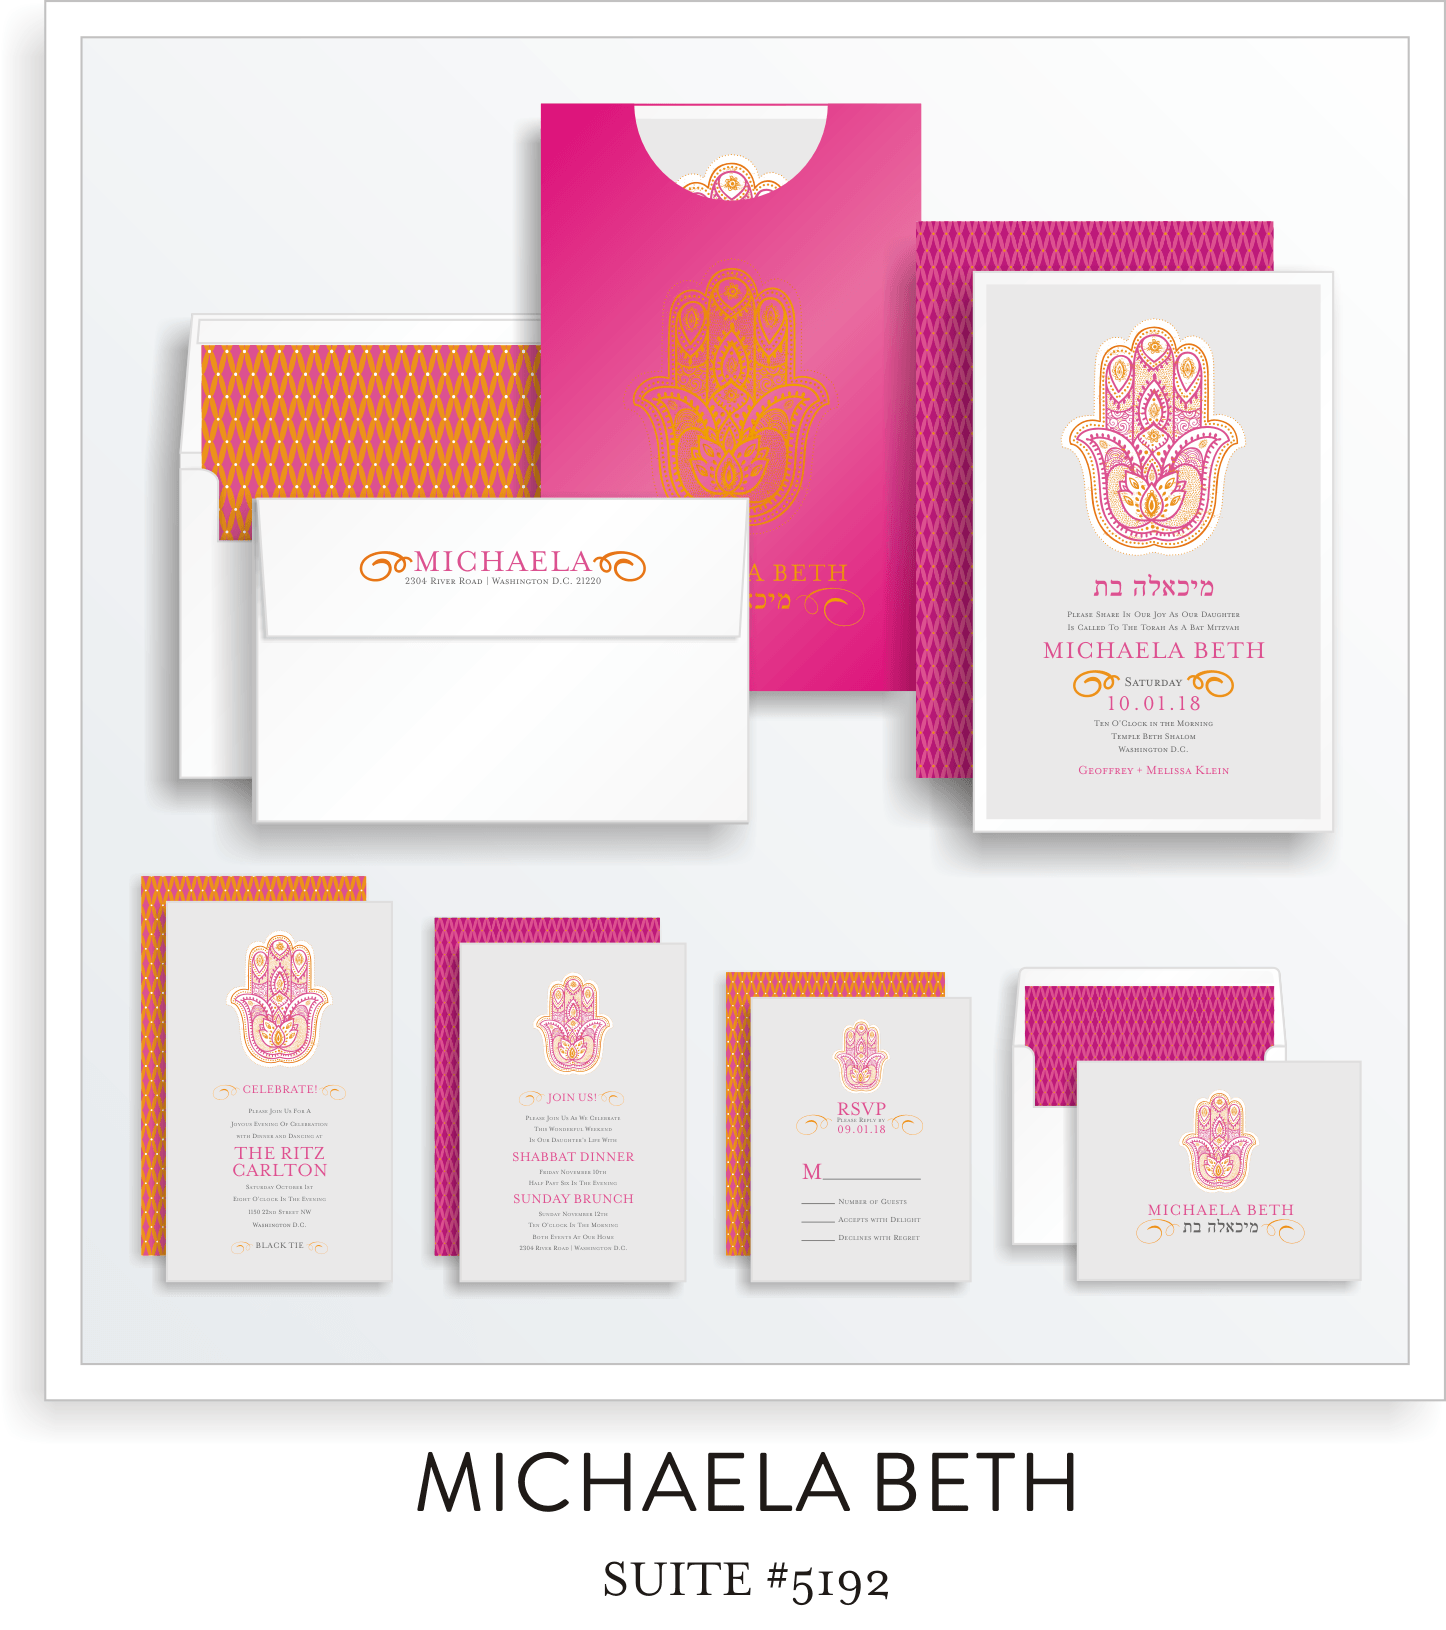 Copy of Bat Mitzvah Invitation Suite 5192 - Michaela Beth